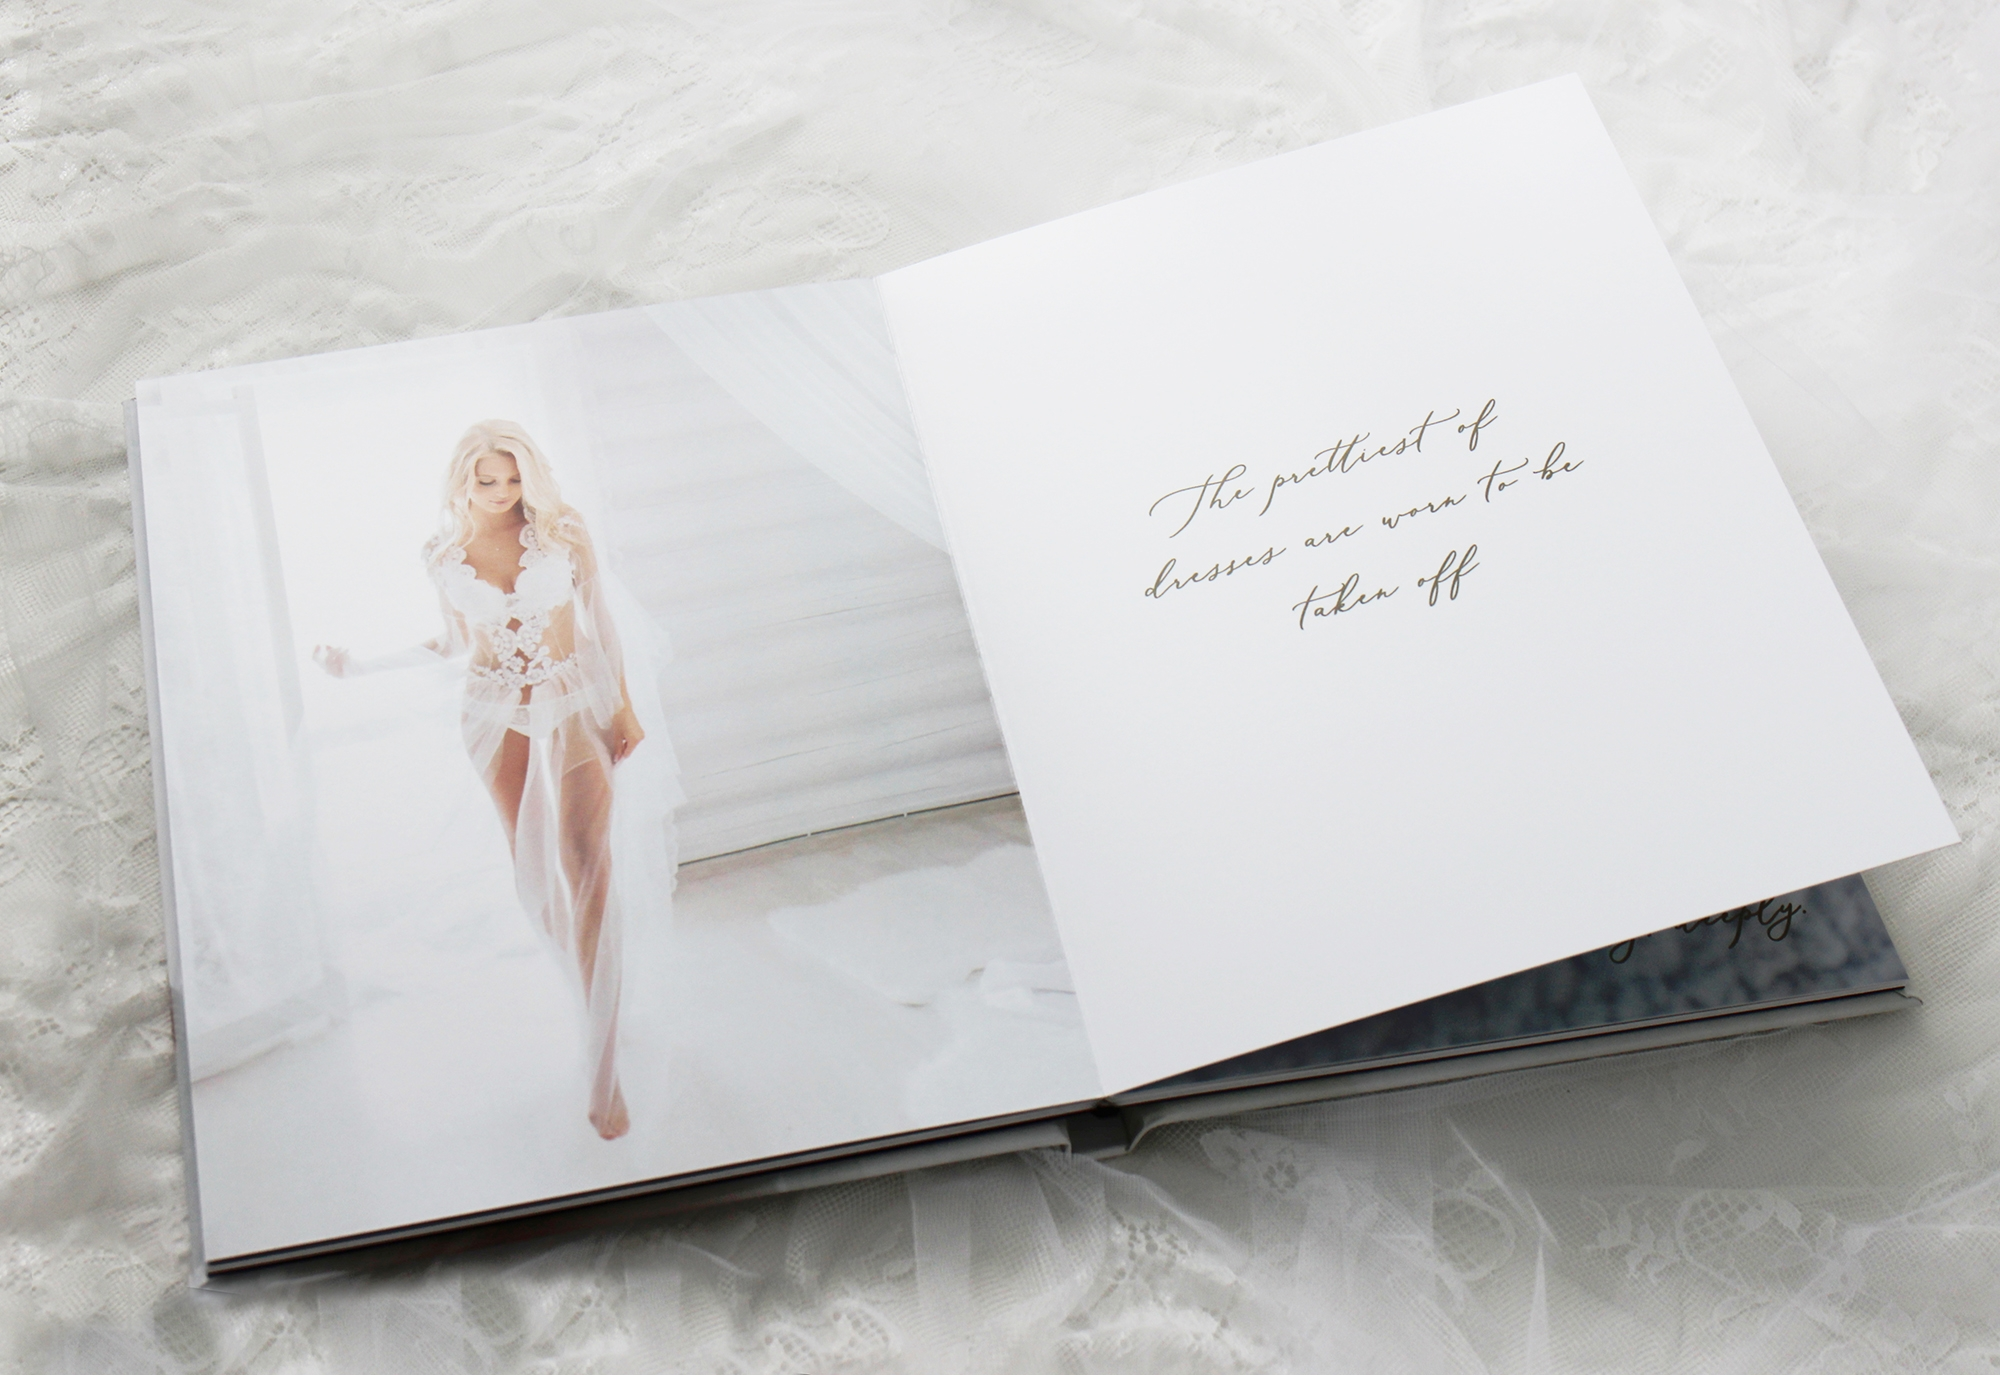 Bridal boudoir book for grooms gift